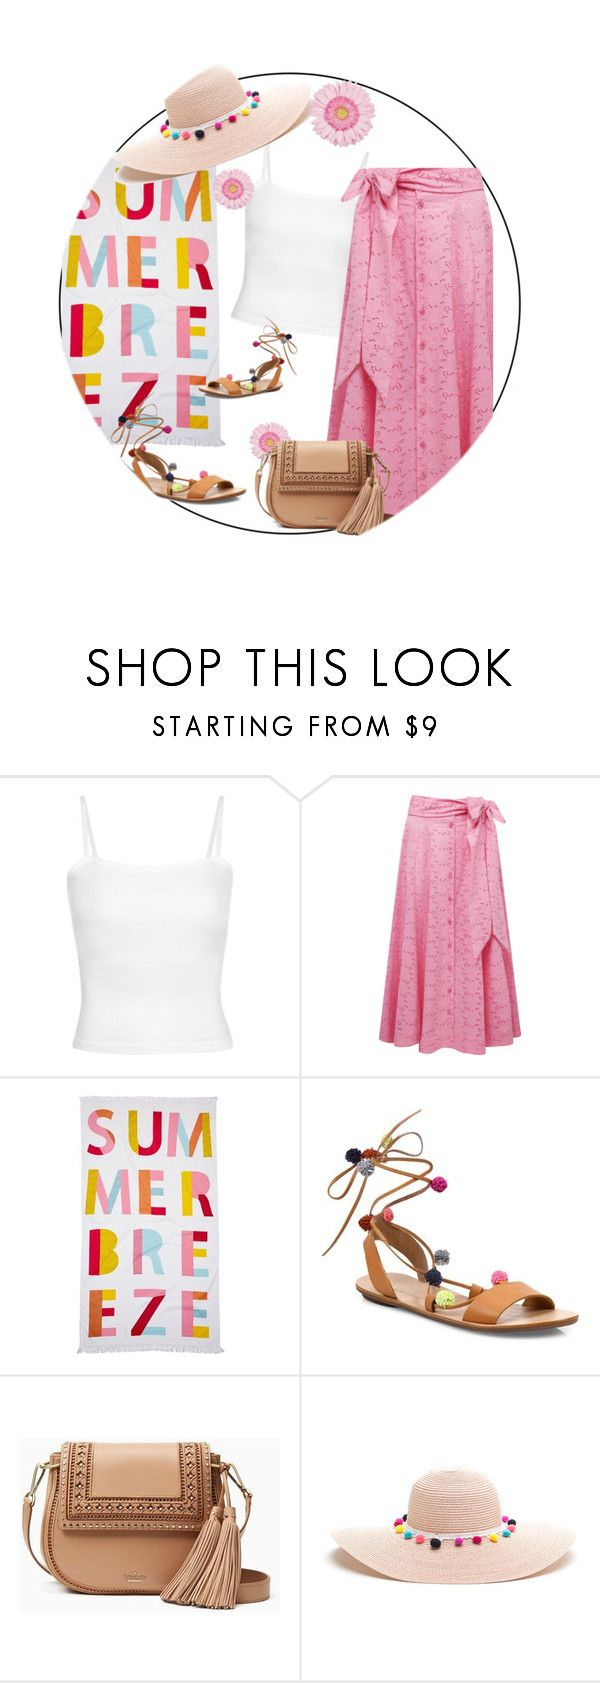 """summer eyelet skirt"" by rvazquez ❤ liked on Polyvore featuring Nordstrom Rack, Loeffler Randall, Kate Spade, Summer, beach and eyelet"